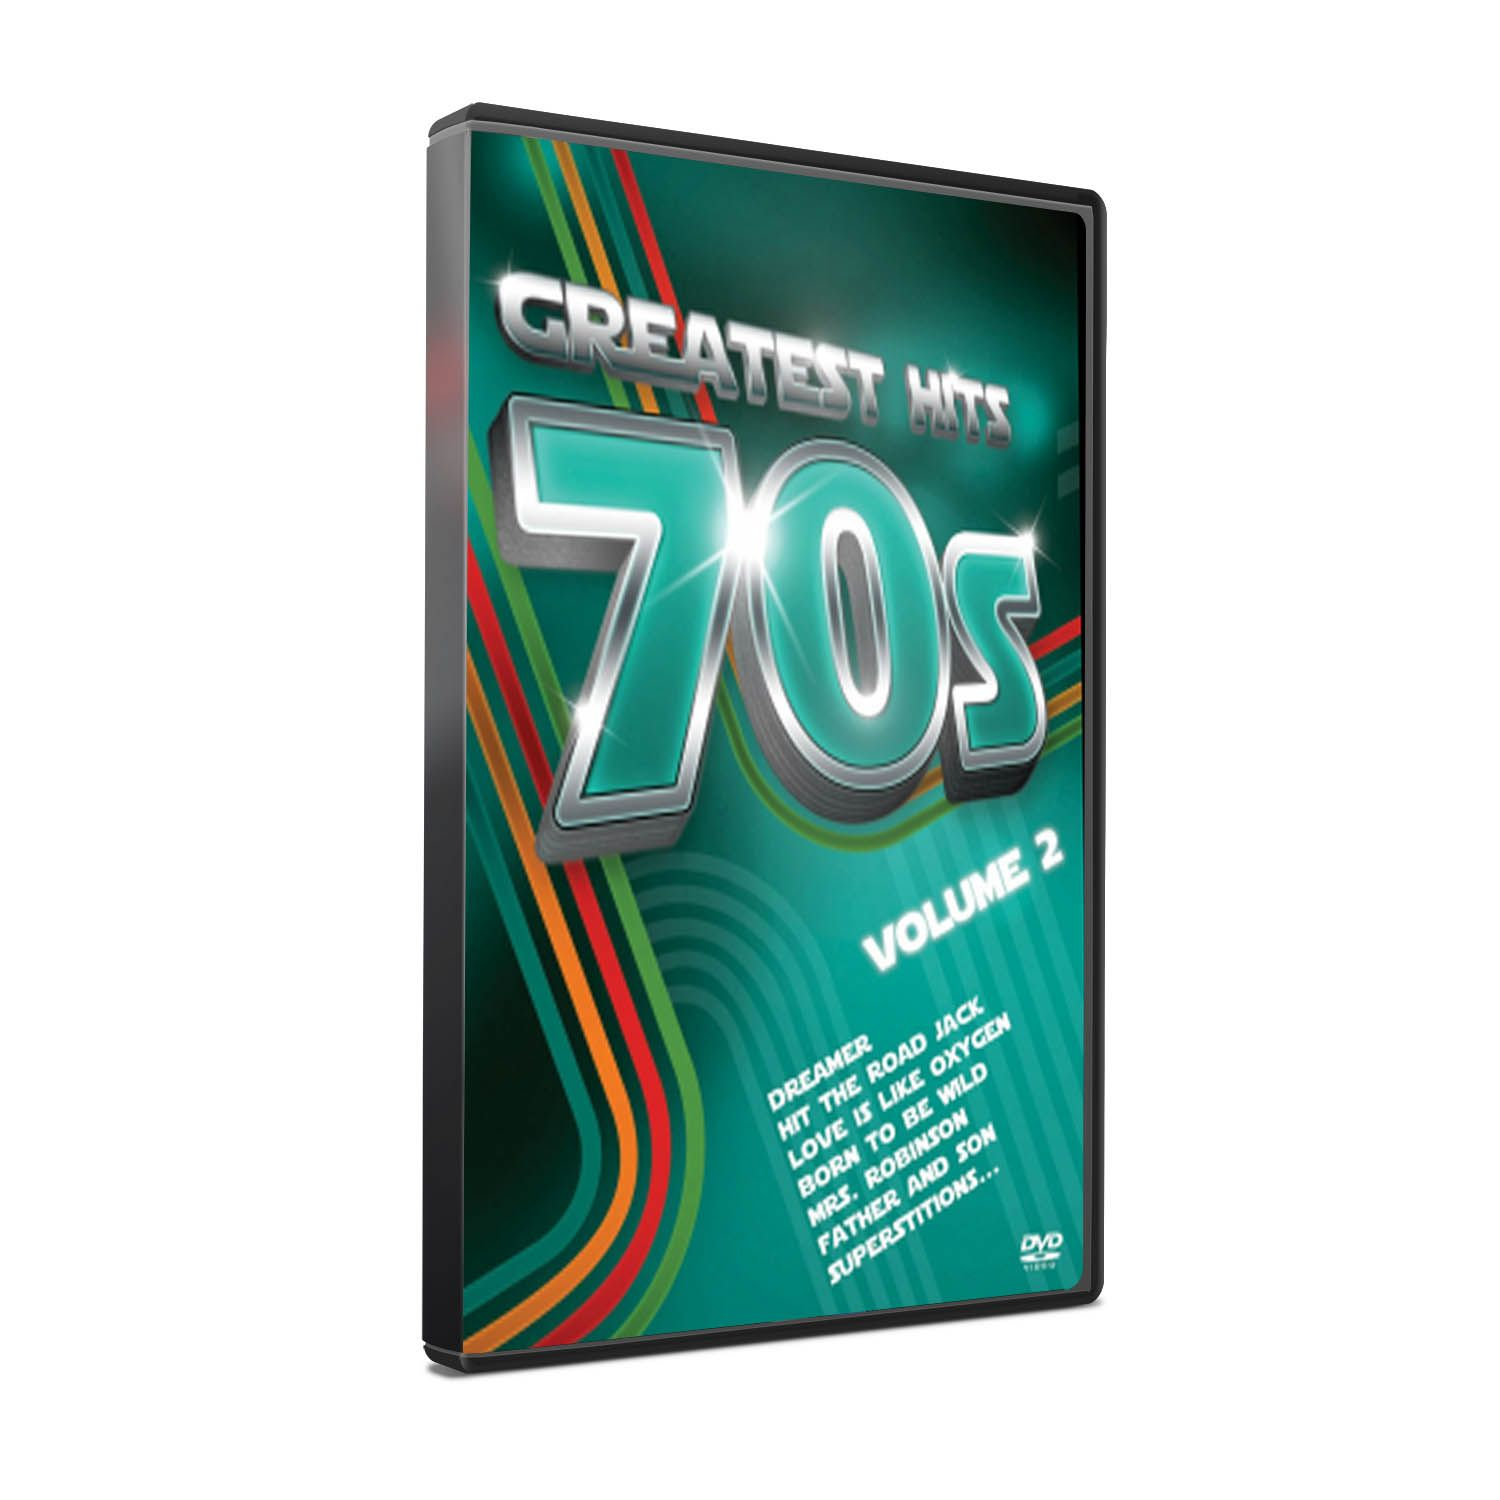 DVD GREATEST HITS 70´S VOL. 2